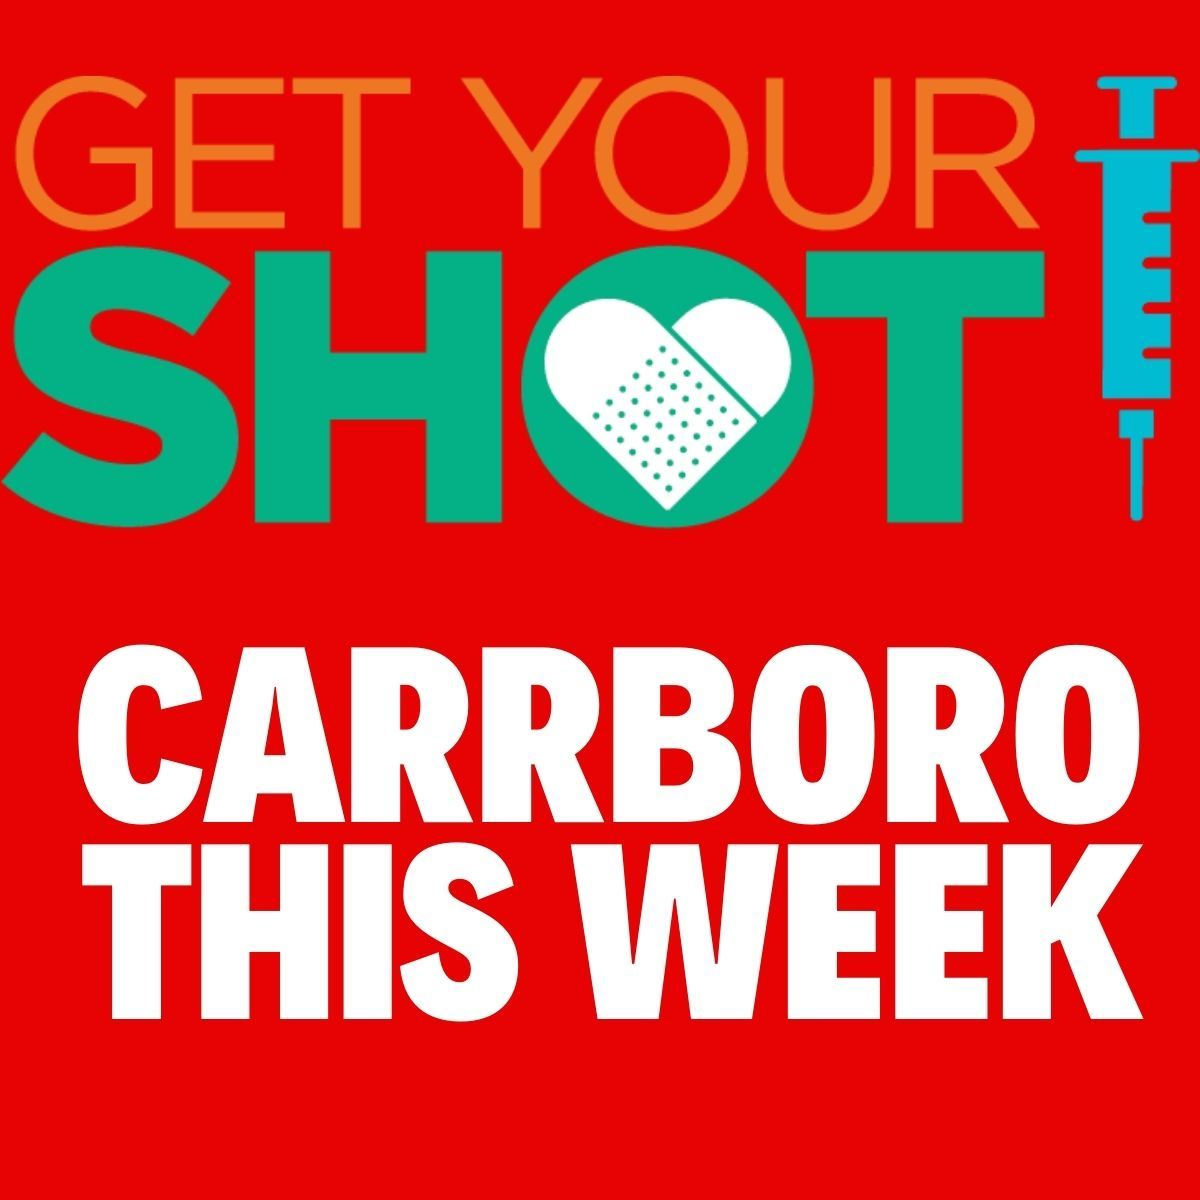 Carrboro This Week March 6